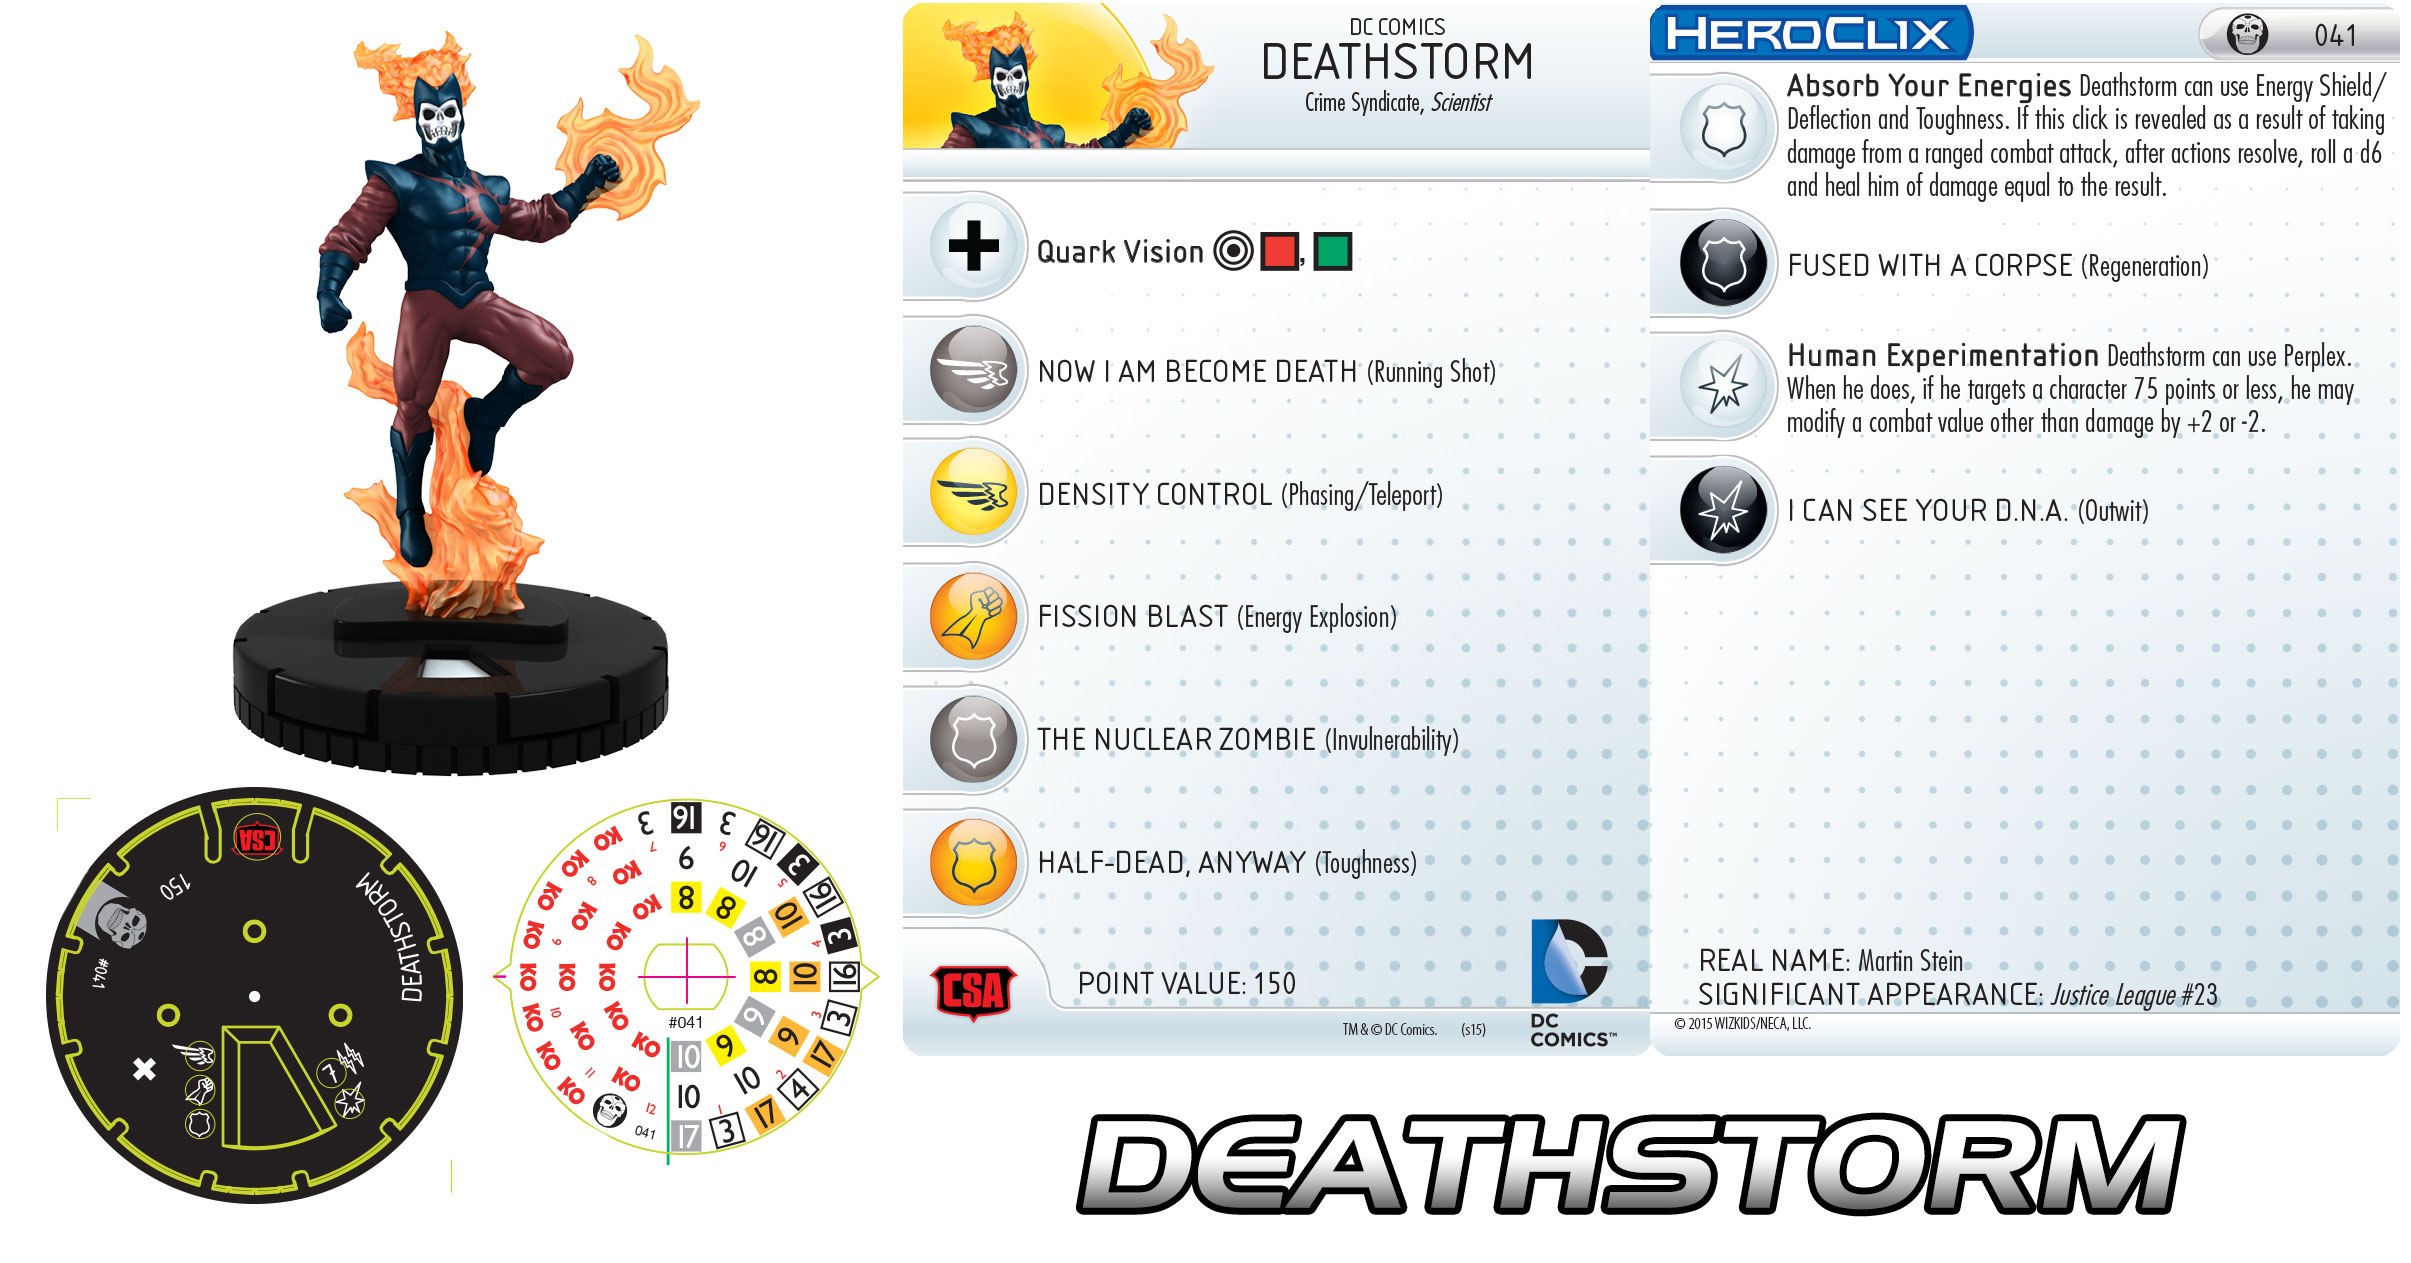 Deathstorm HeroClix from DC HeroClix: Justice League Trinity War